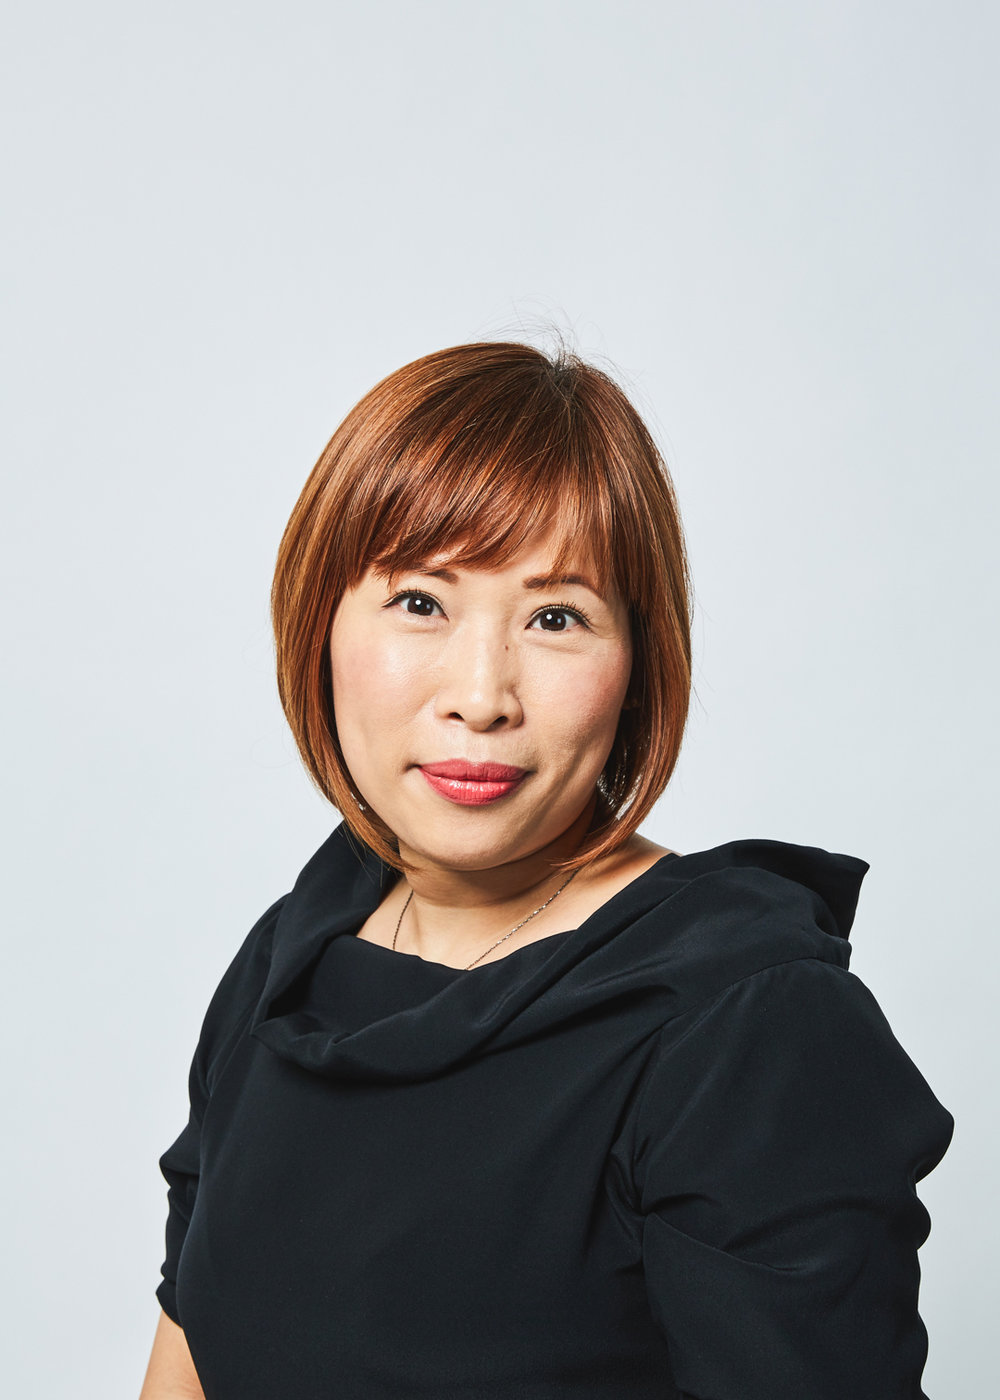 "JOO - With over 23 years of experience, Joo understands the art of gorgeous hair. She has a gift for assessing a person's facial features and personality to deliver the perfect shade and cut. She is also skilled at working with the nuances of Asian hair. Joo values the bond she has with her regulars, appreciating that their level of trust allows them to explore new ideas and techniques together. ""When a client shows happiness over the finished look, it reminds me that I have the best job in the world.""Haircut - $115Blowdry - $95Single Process Color - $125Special Effects - $125Full Balayage - $235Partial Balayage - $195Full Foil - $250Partial Foil - $195"